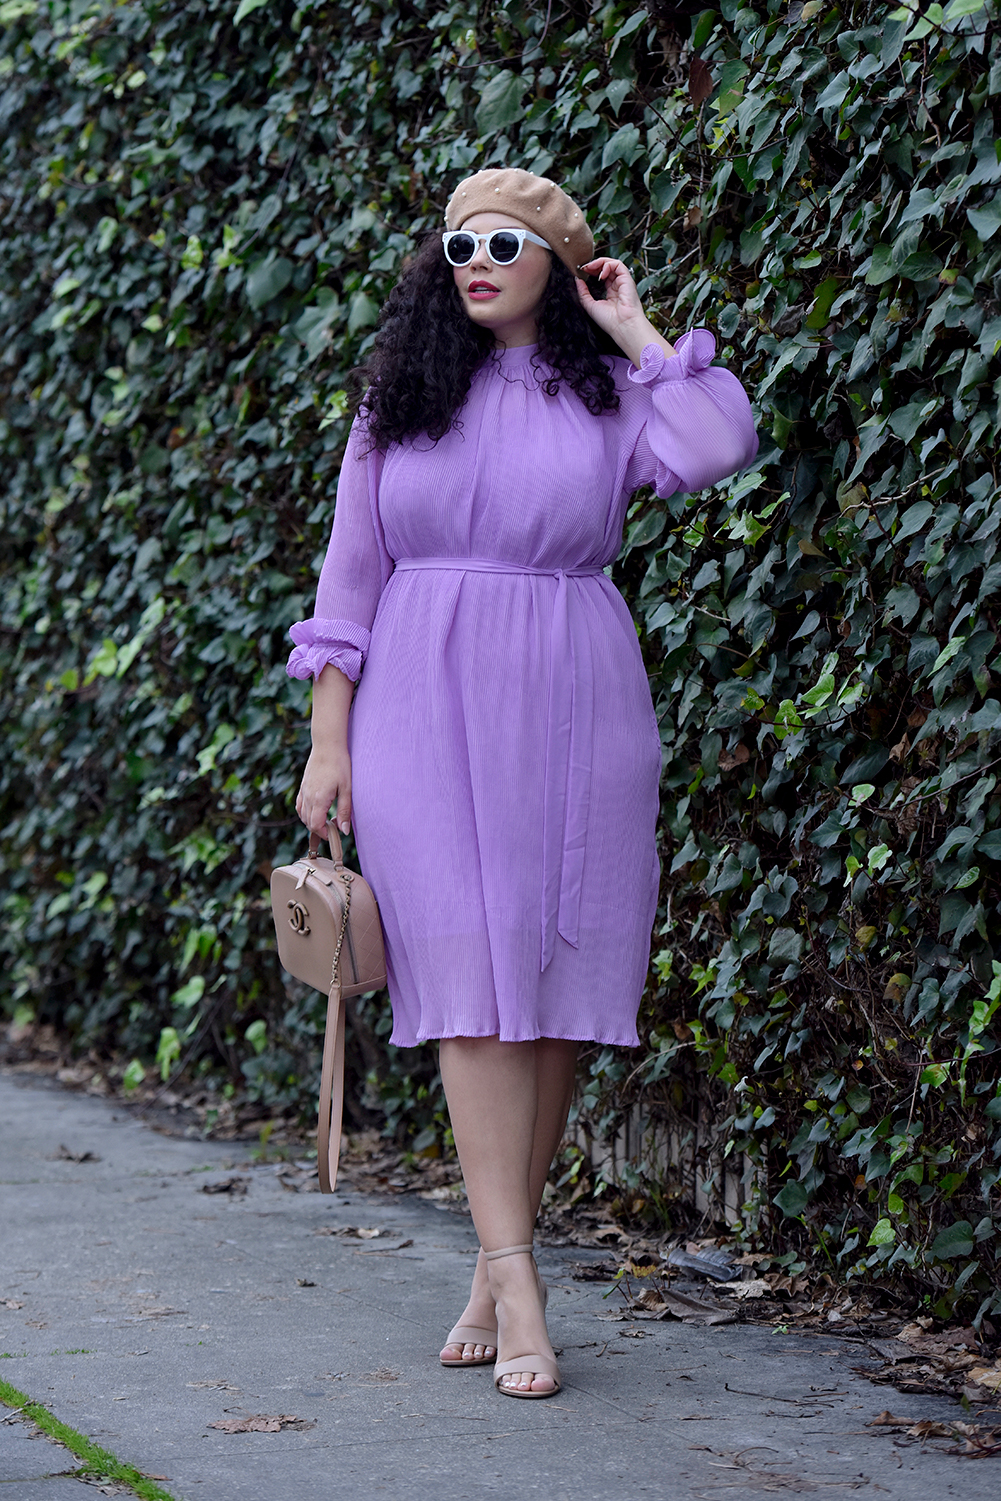 This Is How I'm Styling Midi Dresses Right Now Via @GirlWithCurves #dresses #midi #outfits #fashion #style